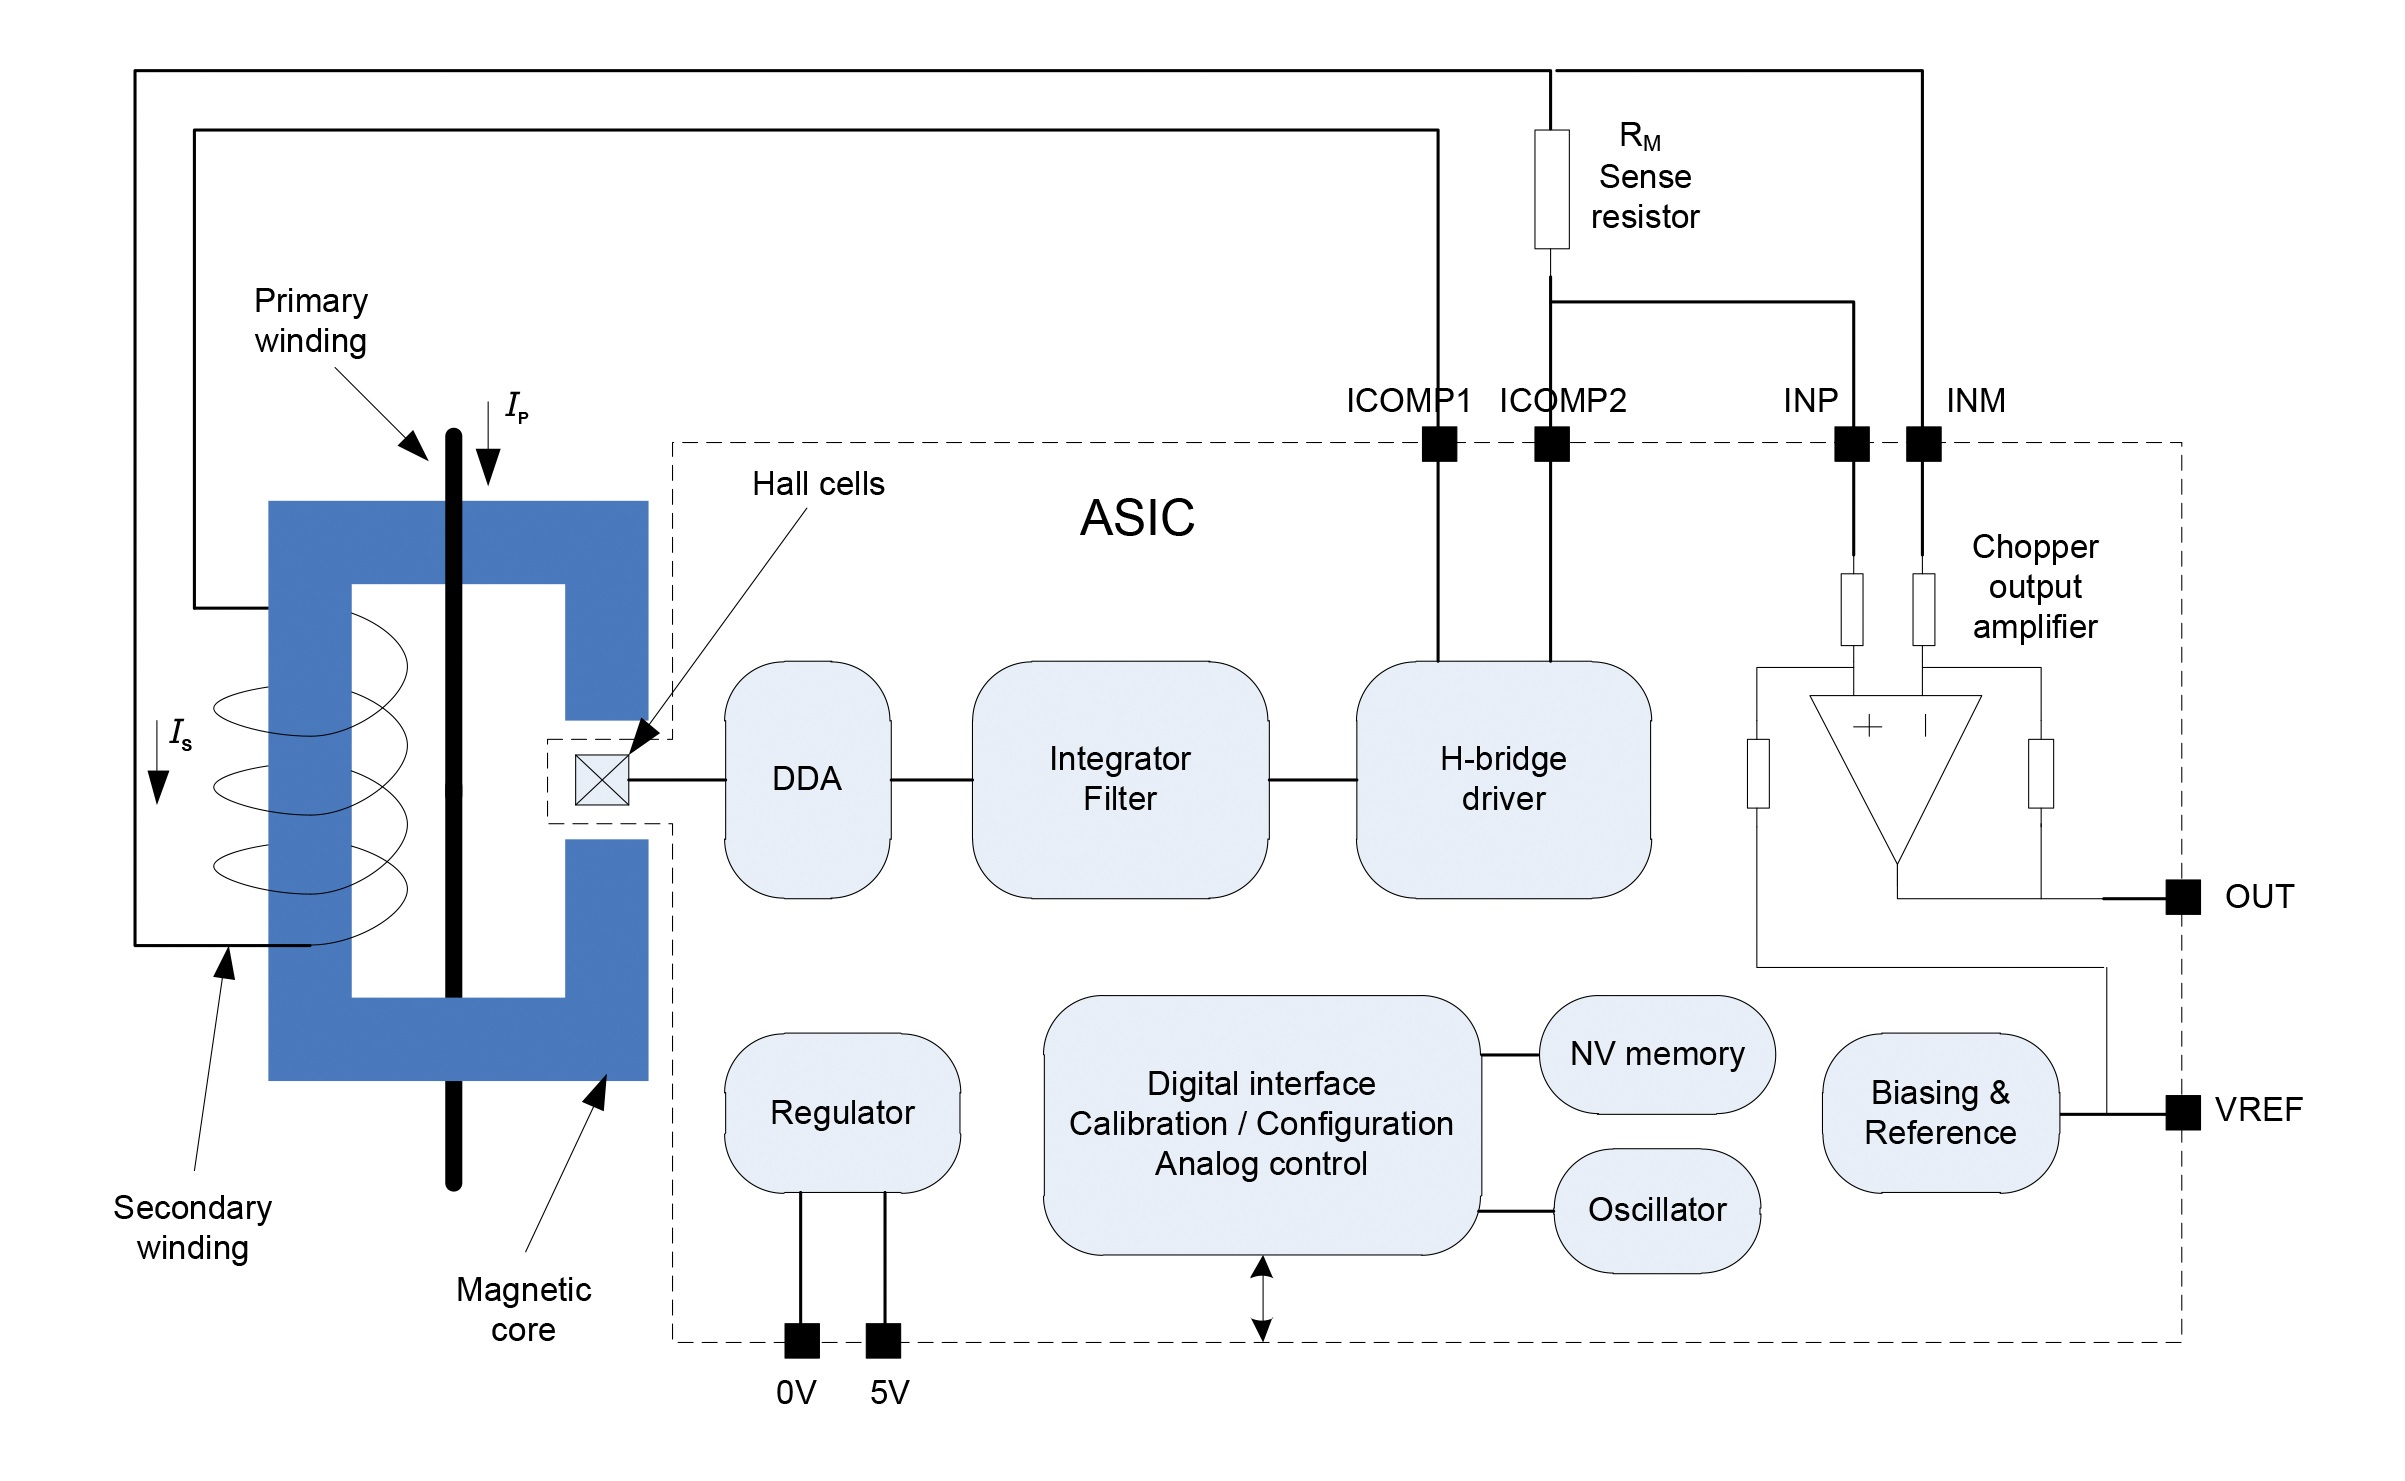 Wiring Diagram For Chopper Simple Guide About Motorcycle Mini Asic Design Improves Transducer Performance 49cc